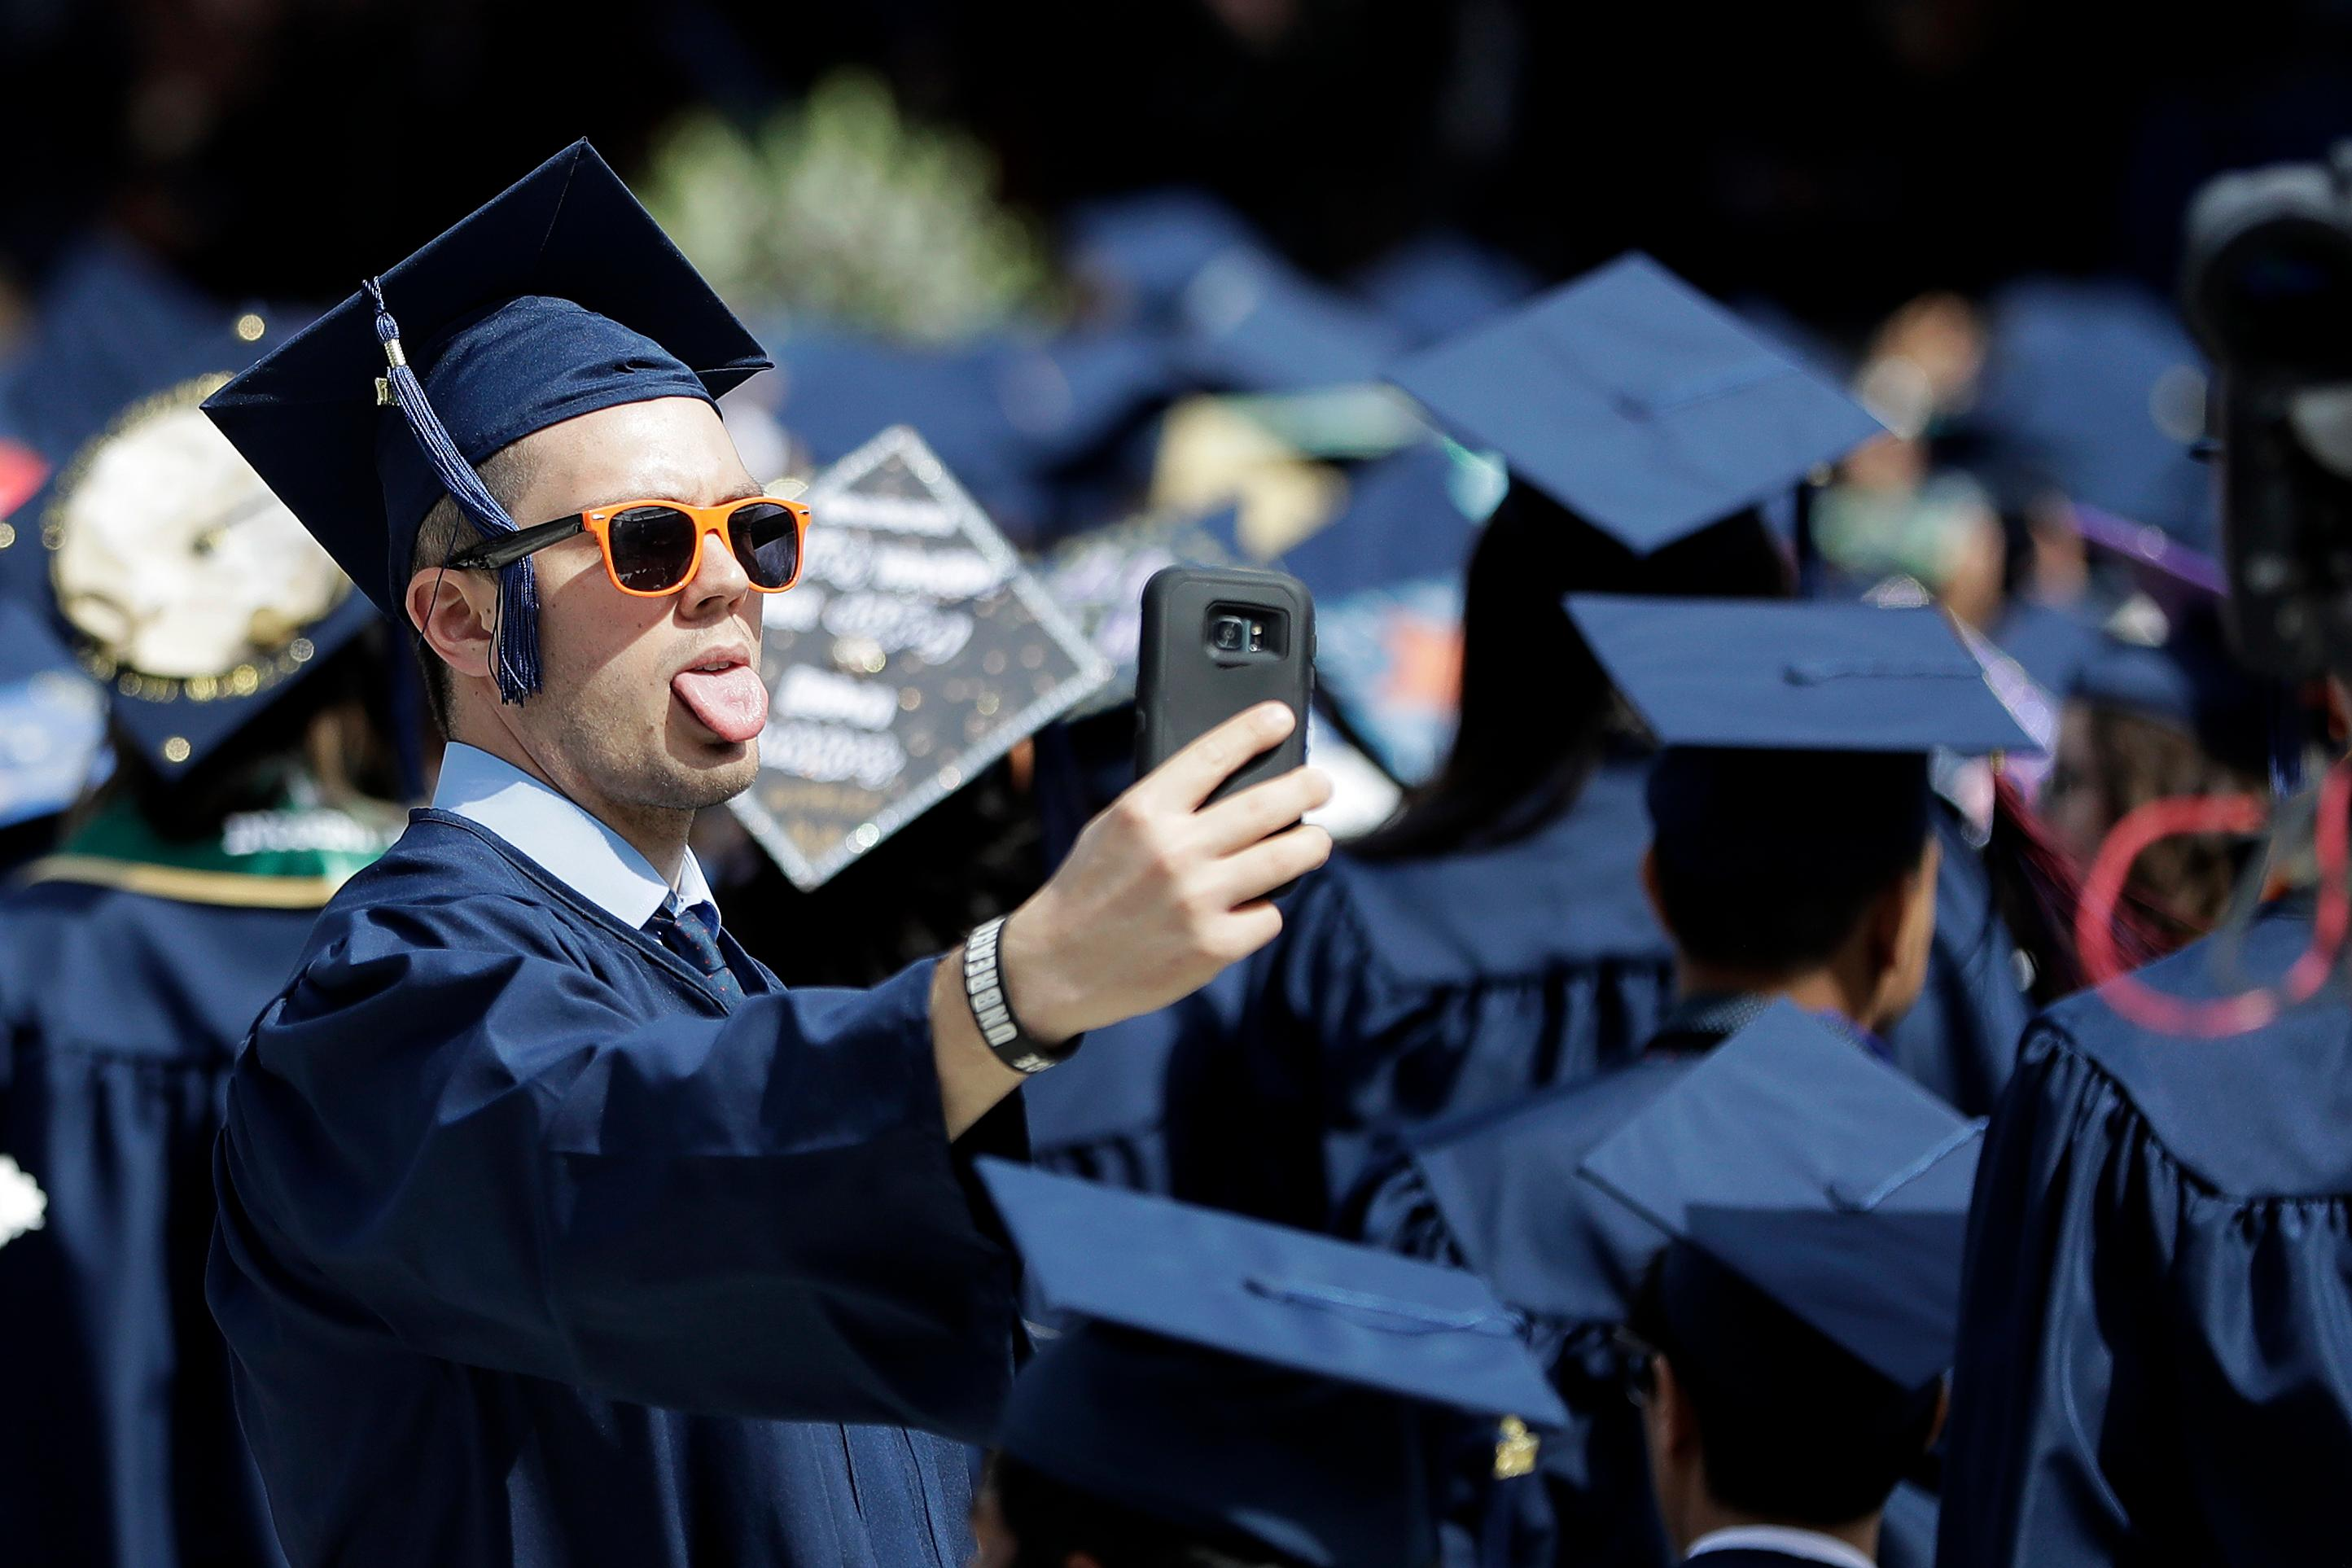 A graduate takes a selfie as musical group Bon Jovi performs during a surprise appearance at the Fairleigh Dickinson University commencement ceremony, Tuesday, May 16, 2017, at MetLife Stadium in East Rutherford, N.J. (AP Photo/Julio Cortez)